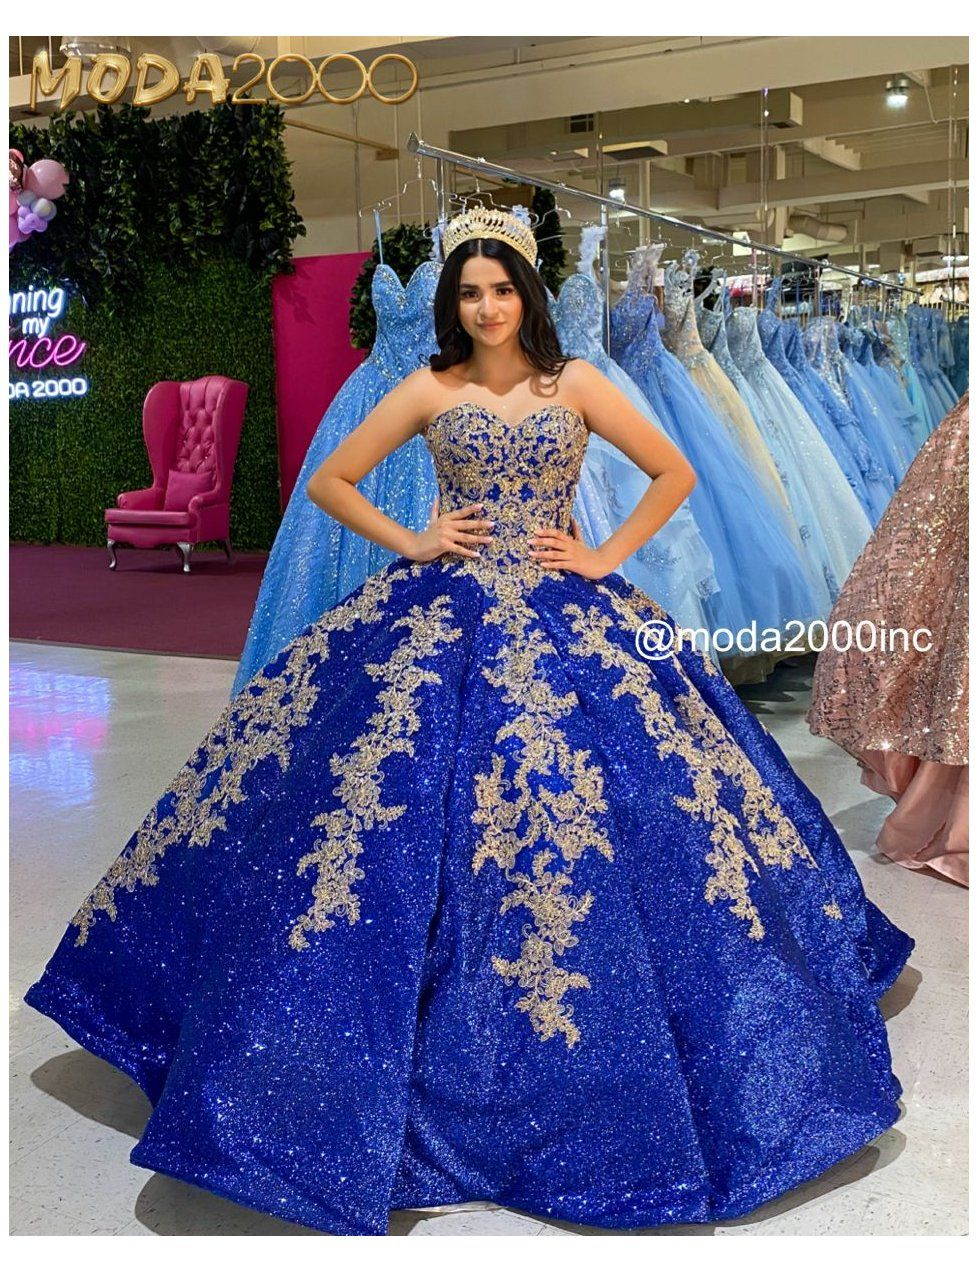 Glittery Royal Blue And Gold Elegant Themed Quinceanera Dress Quince Dresses Blue And Gol In 2021 Dresses Quinceanera Blue Quinceanera Dresses Blue Quince Dresses [ 1272 x 978 Pixel ]